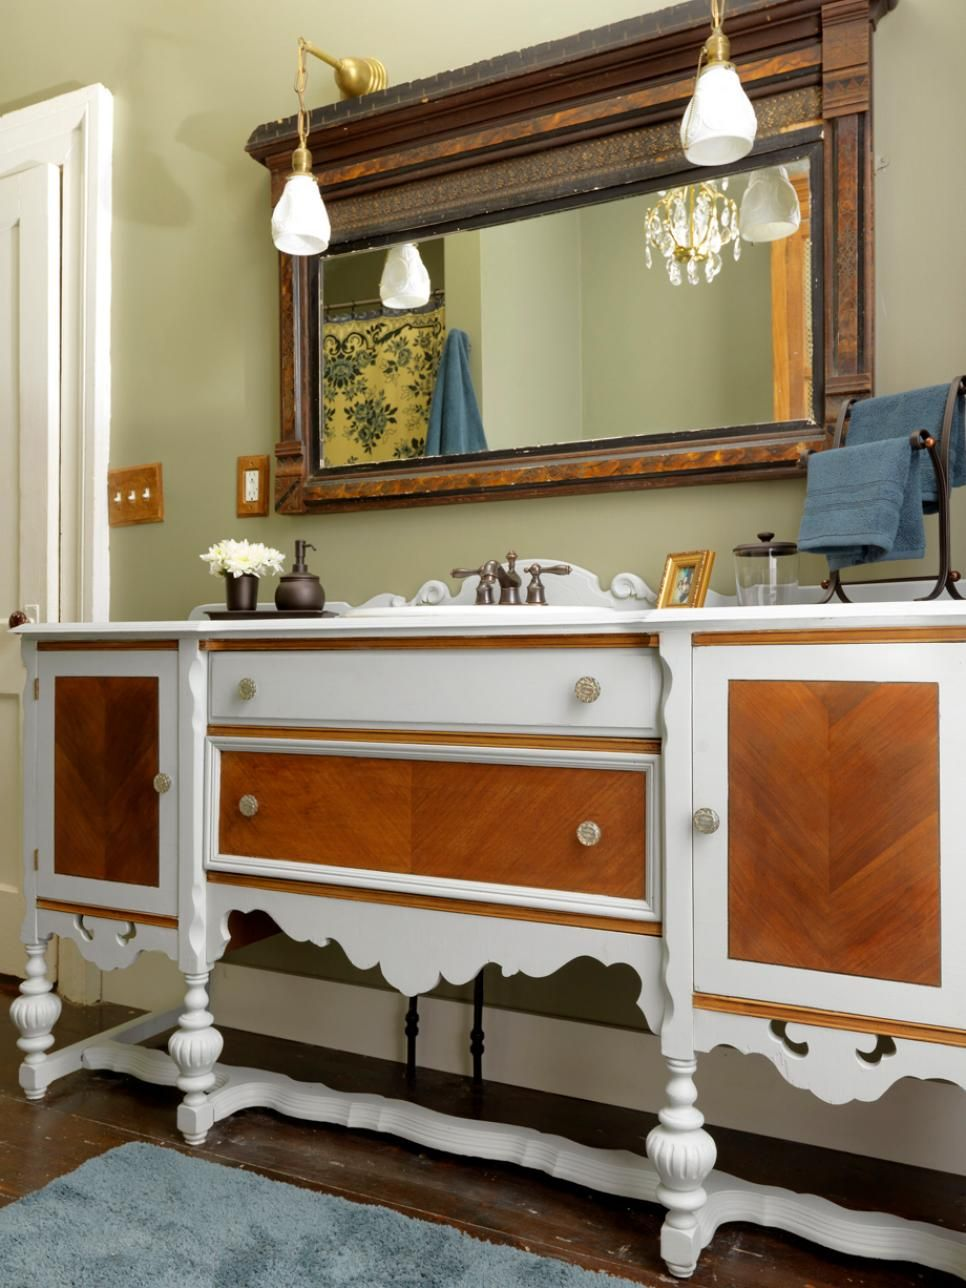 An Old Dining Room Sideboard And A Secondhand Sink Were Converted Into Lengthy Bathroom Vanity Design By Joanne Palmisano